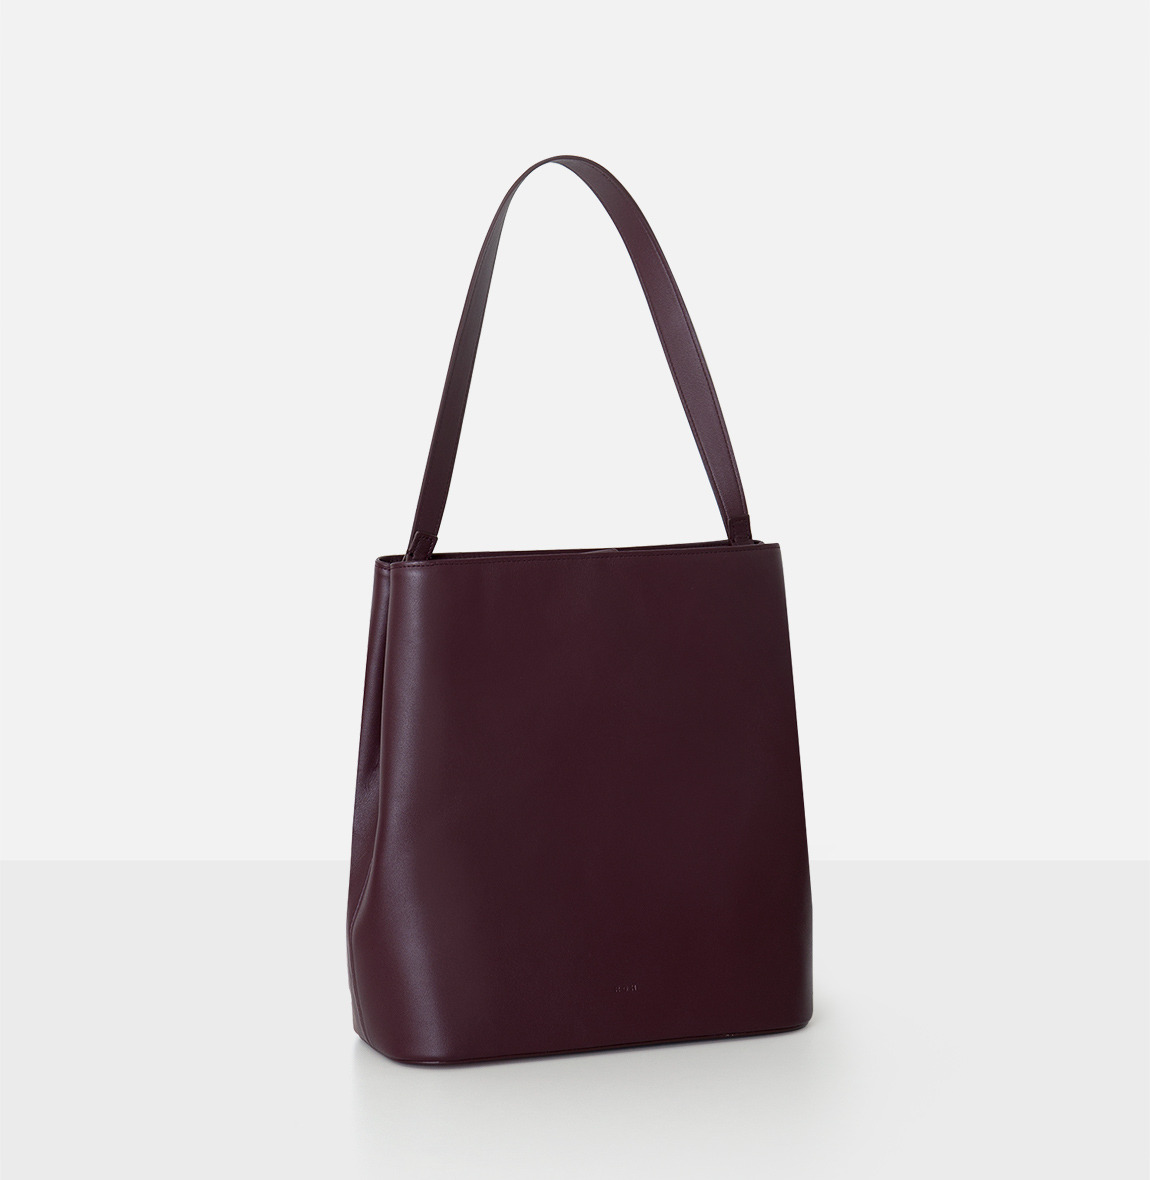 ROH Aline shoulder bag Burgundy